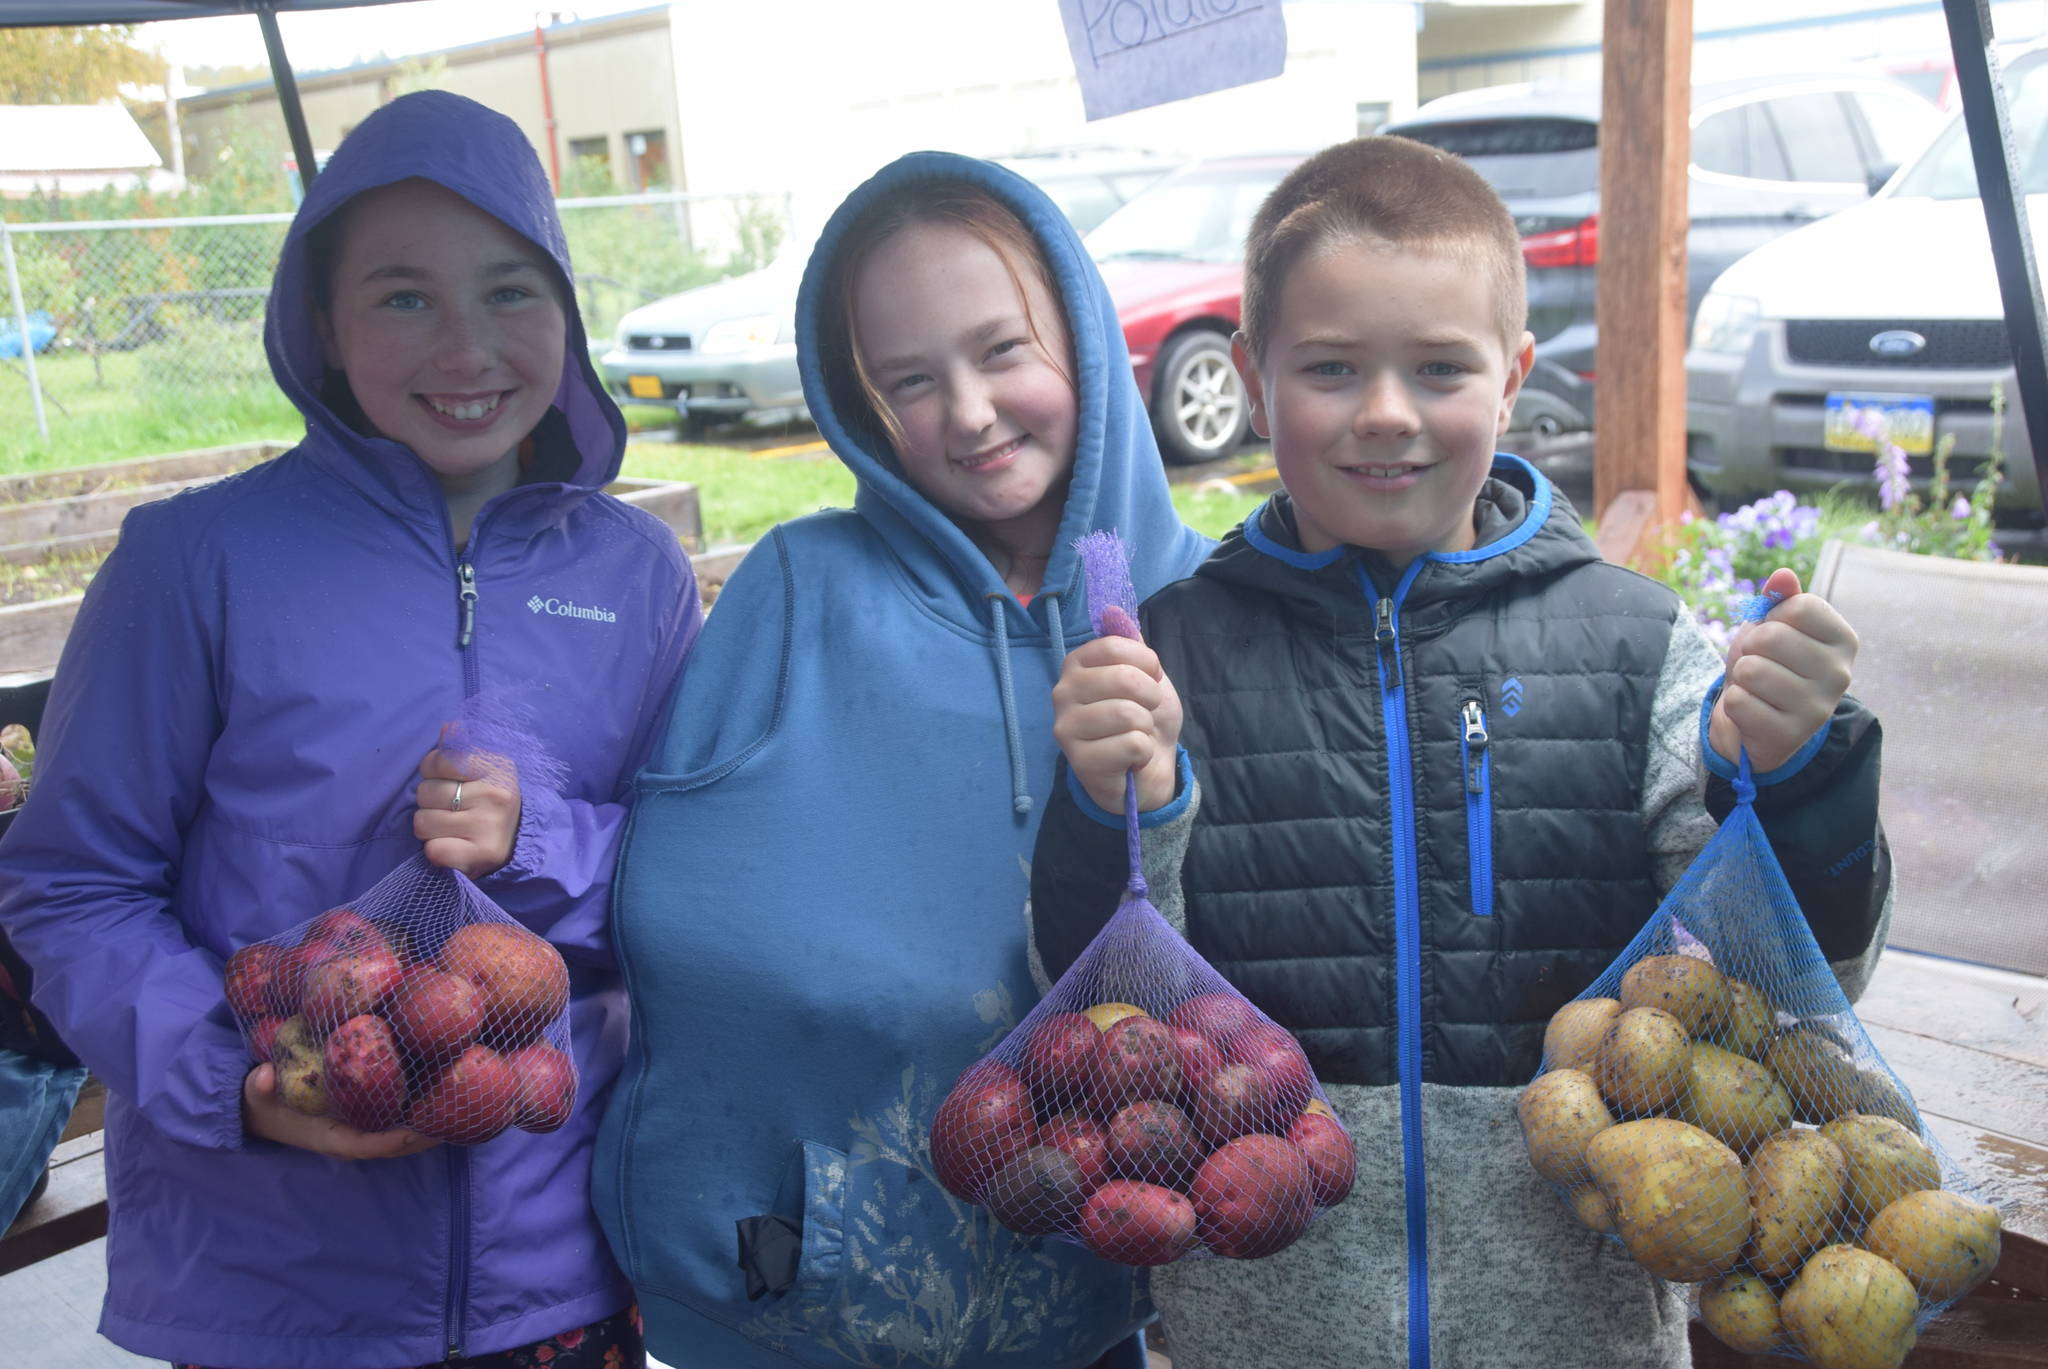 From left, Kendra Bailey, Emma McKay and Tristen Barnes show off their potatoes at the Montessori Farmer's Market at the Soldotna Montessori School on Sept. 13, 2019. (Photo by Brian Mazurek/Peninsula Clarion)